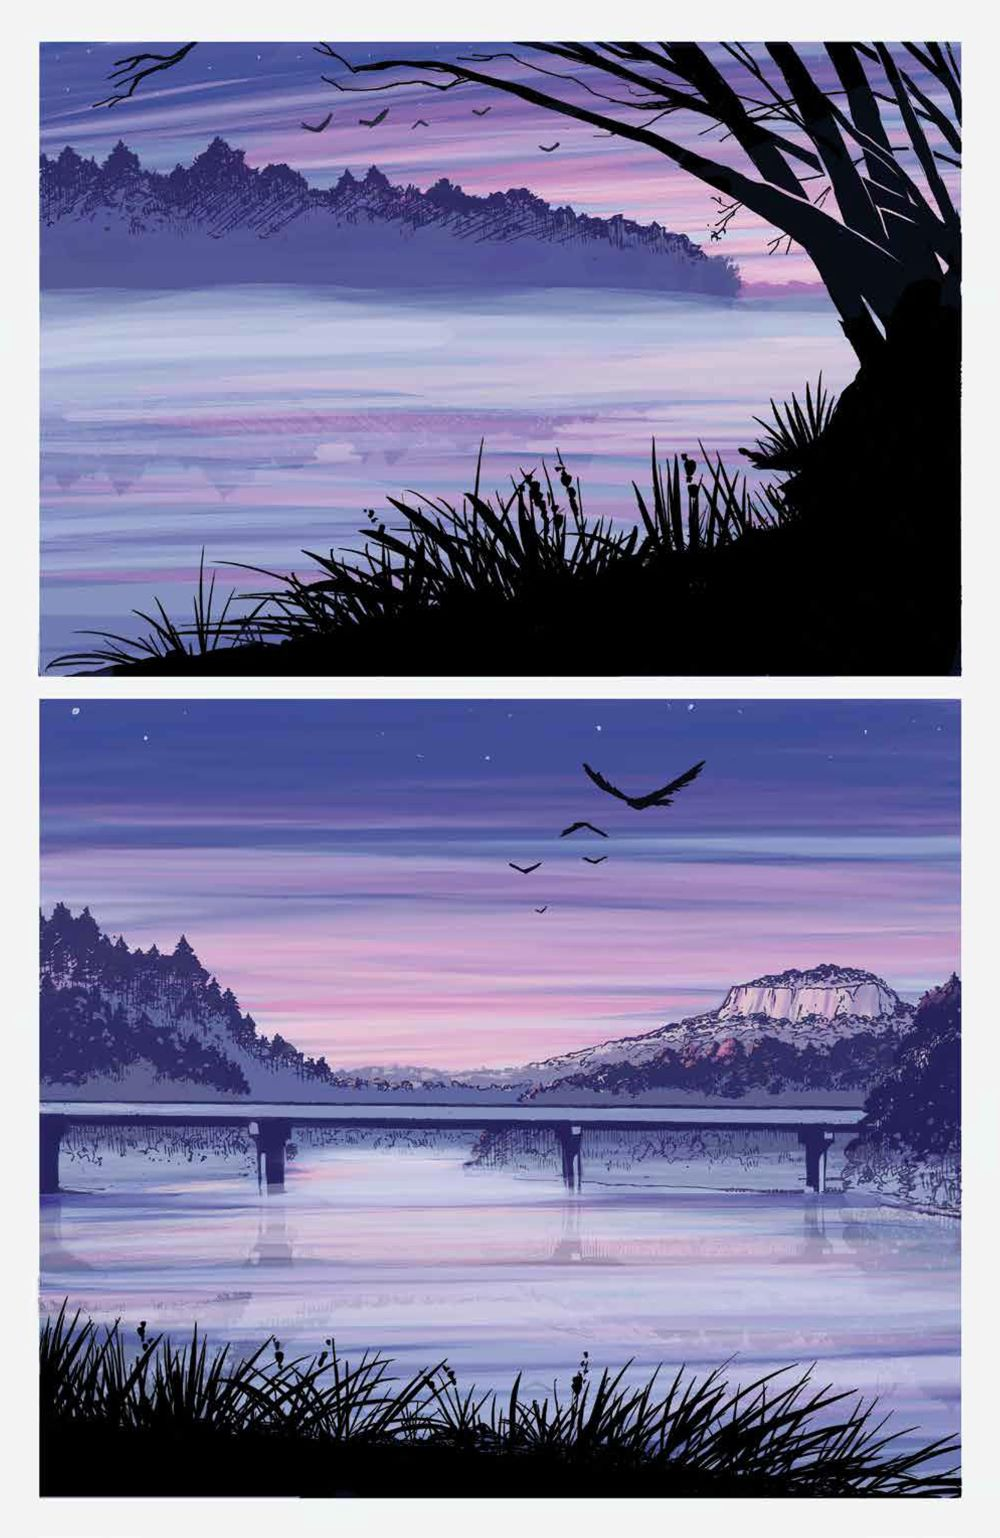 DownRiverPeople_SC_PRESS_9 ComicList Previews: THE DOWN RIVER PEOPLE GN